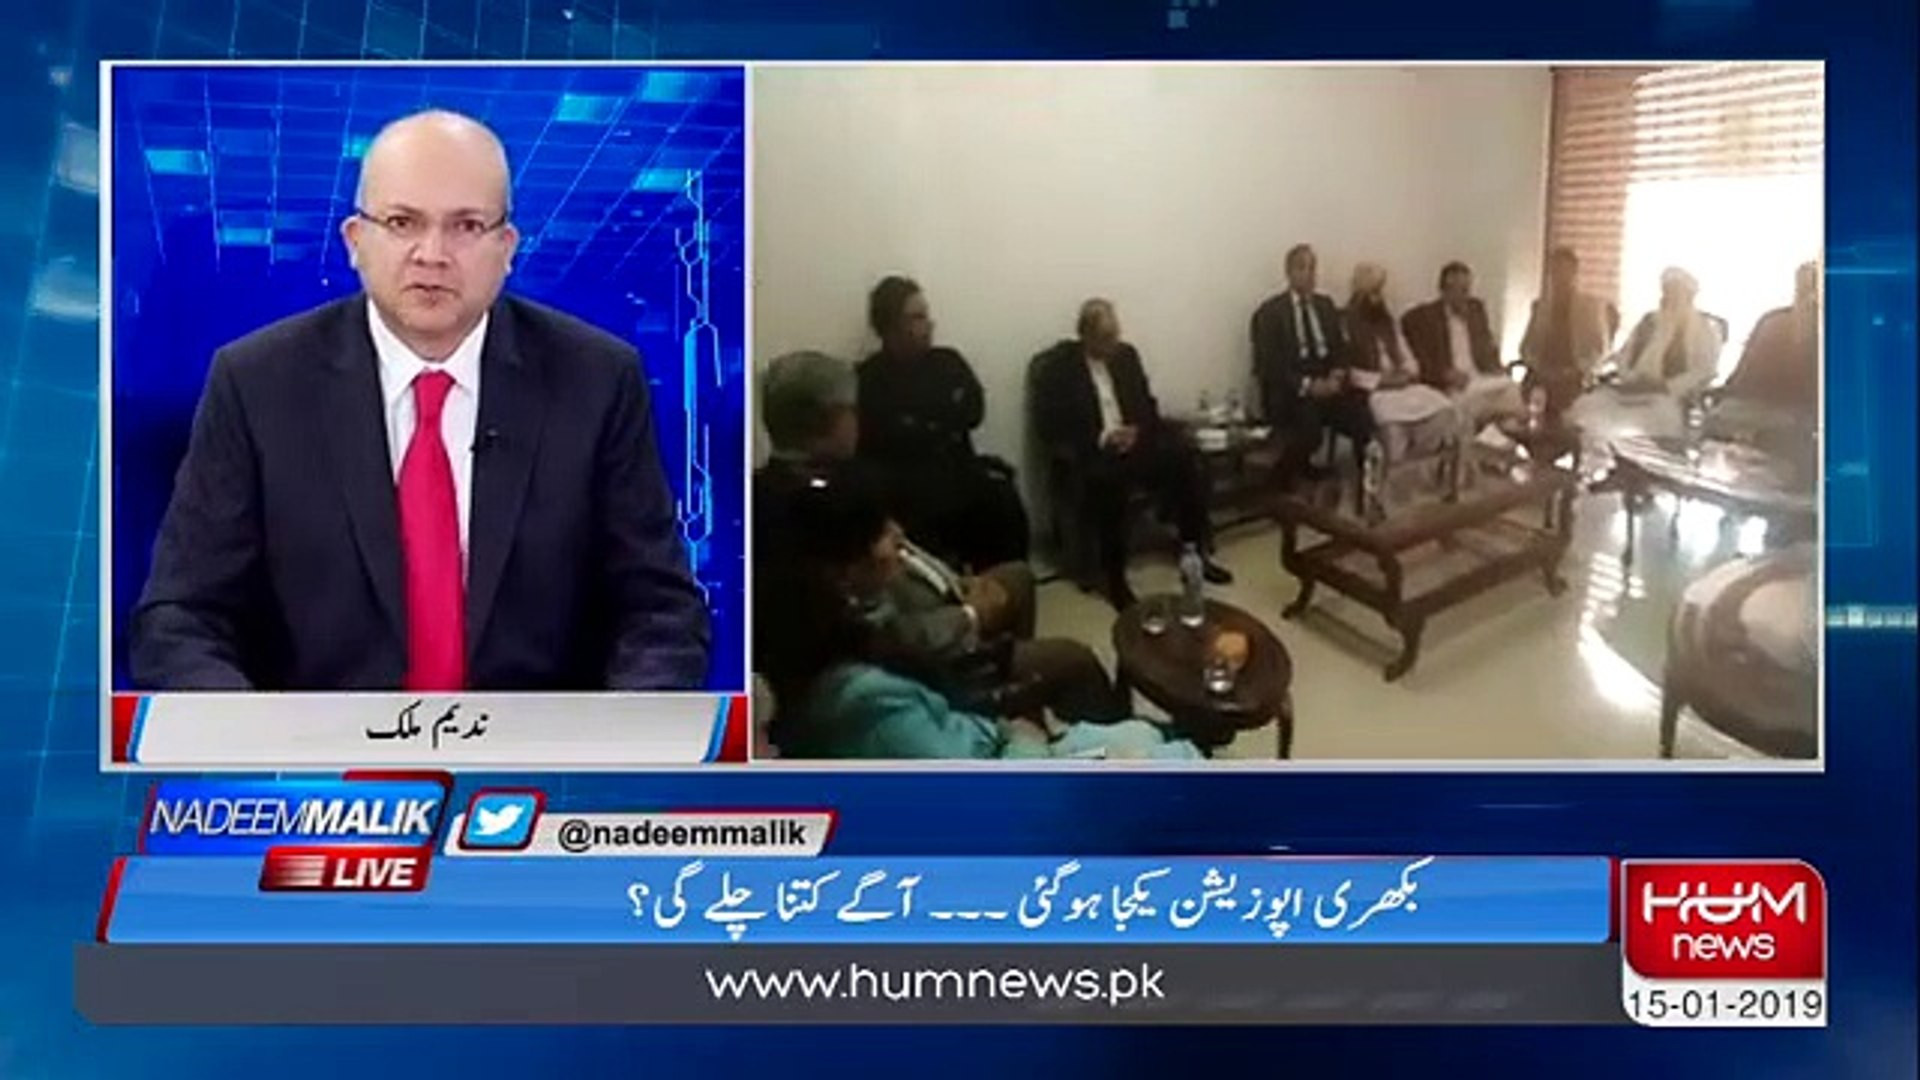 Opposition parties got together, forgot claims to drag each other- Nadeem Malik